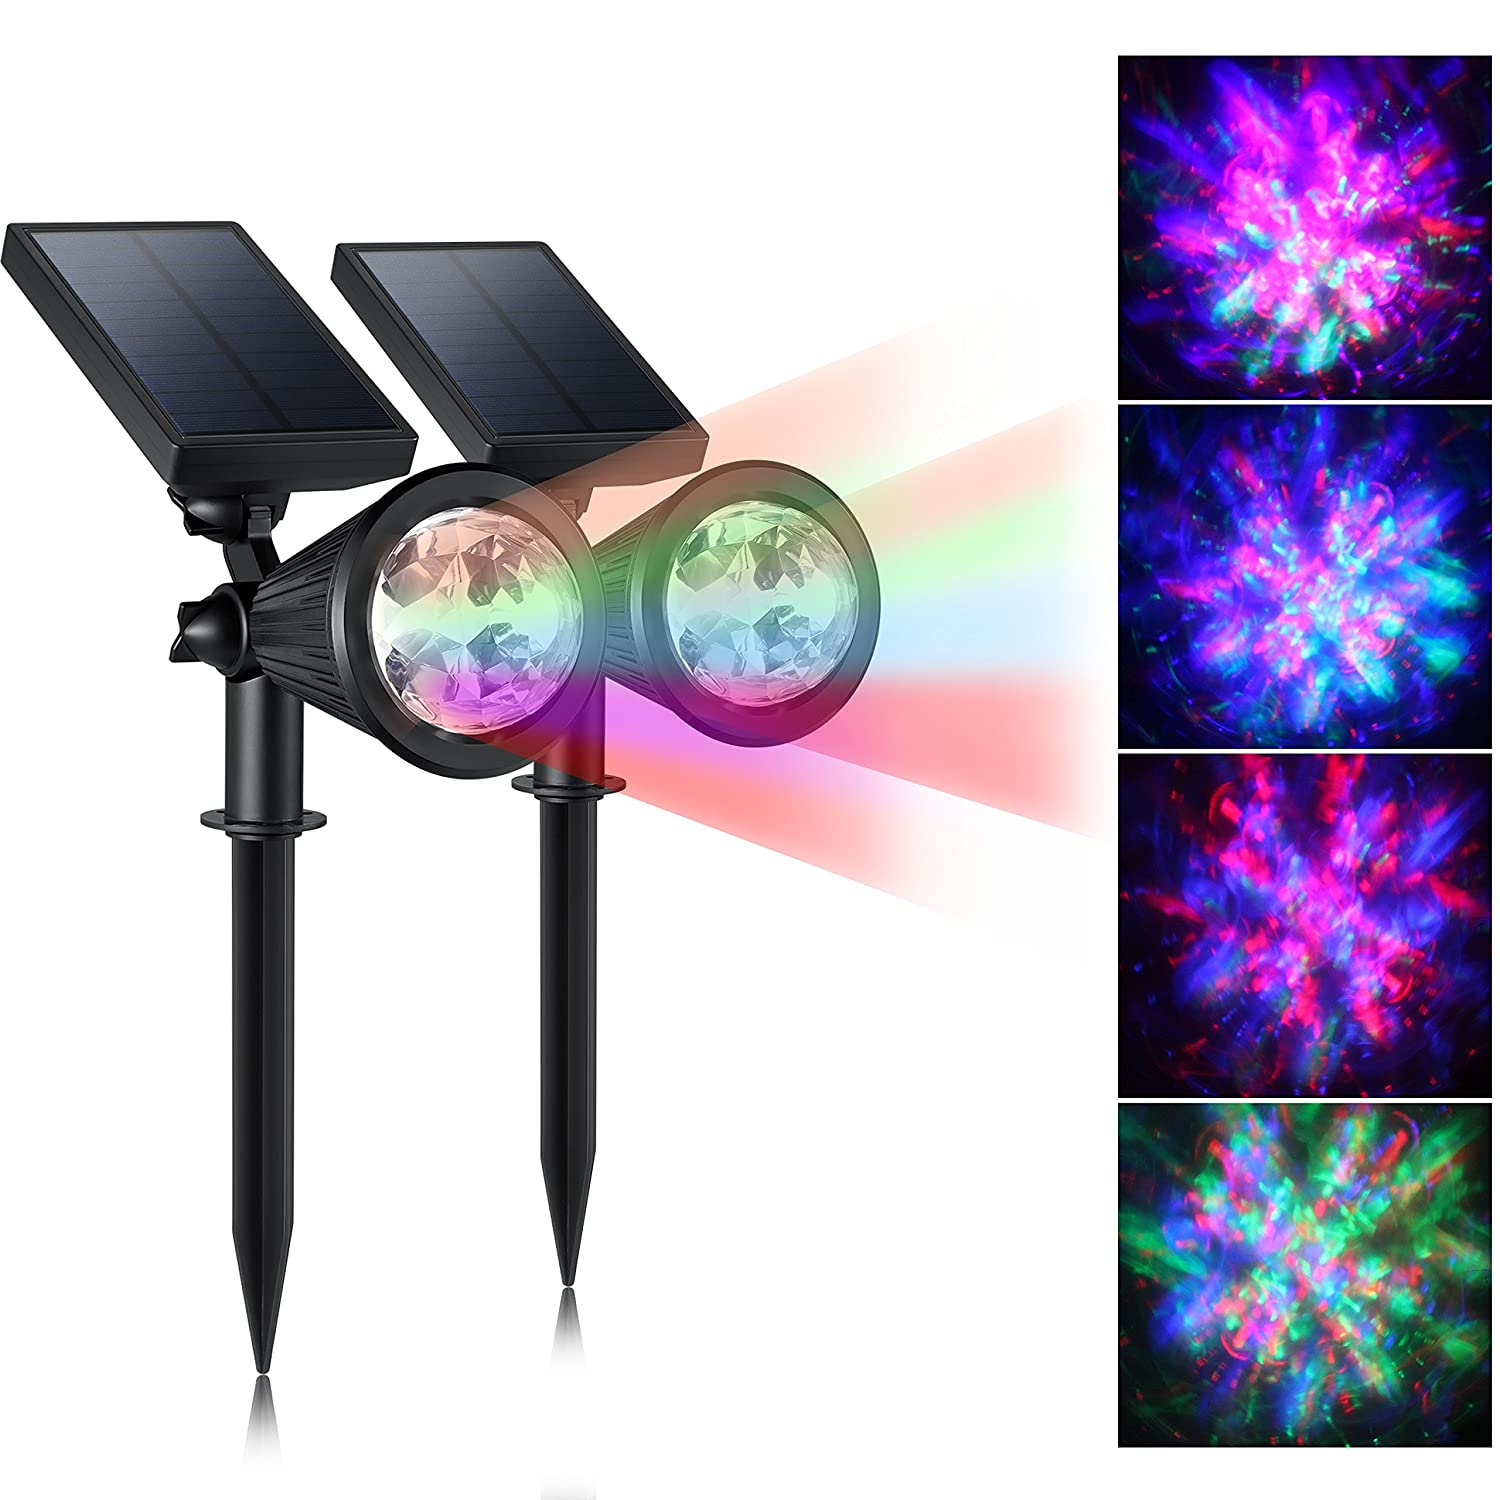 Solar Christmas Lights Outdoor, CREATIVE DESIGN Colored Solar Spotlight  Outdoor, Waterproof Wall Lights Solar Lights With Auto On/Off For Garden,  Christmas, ...